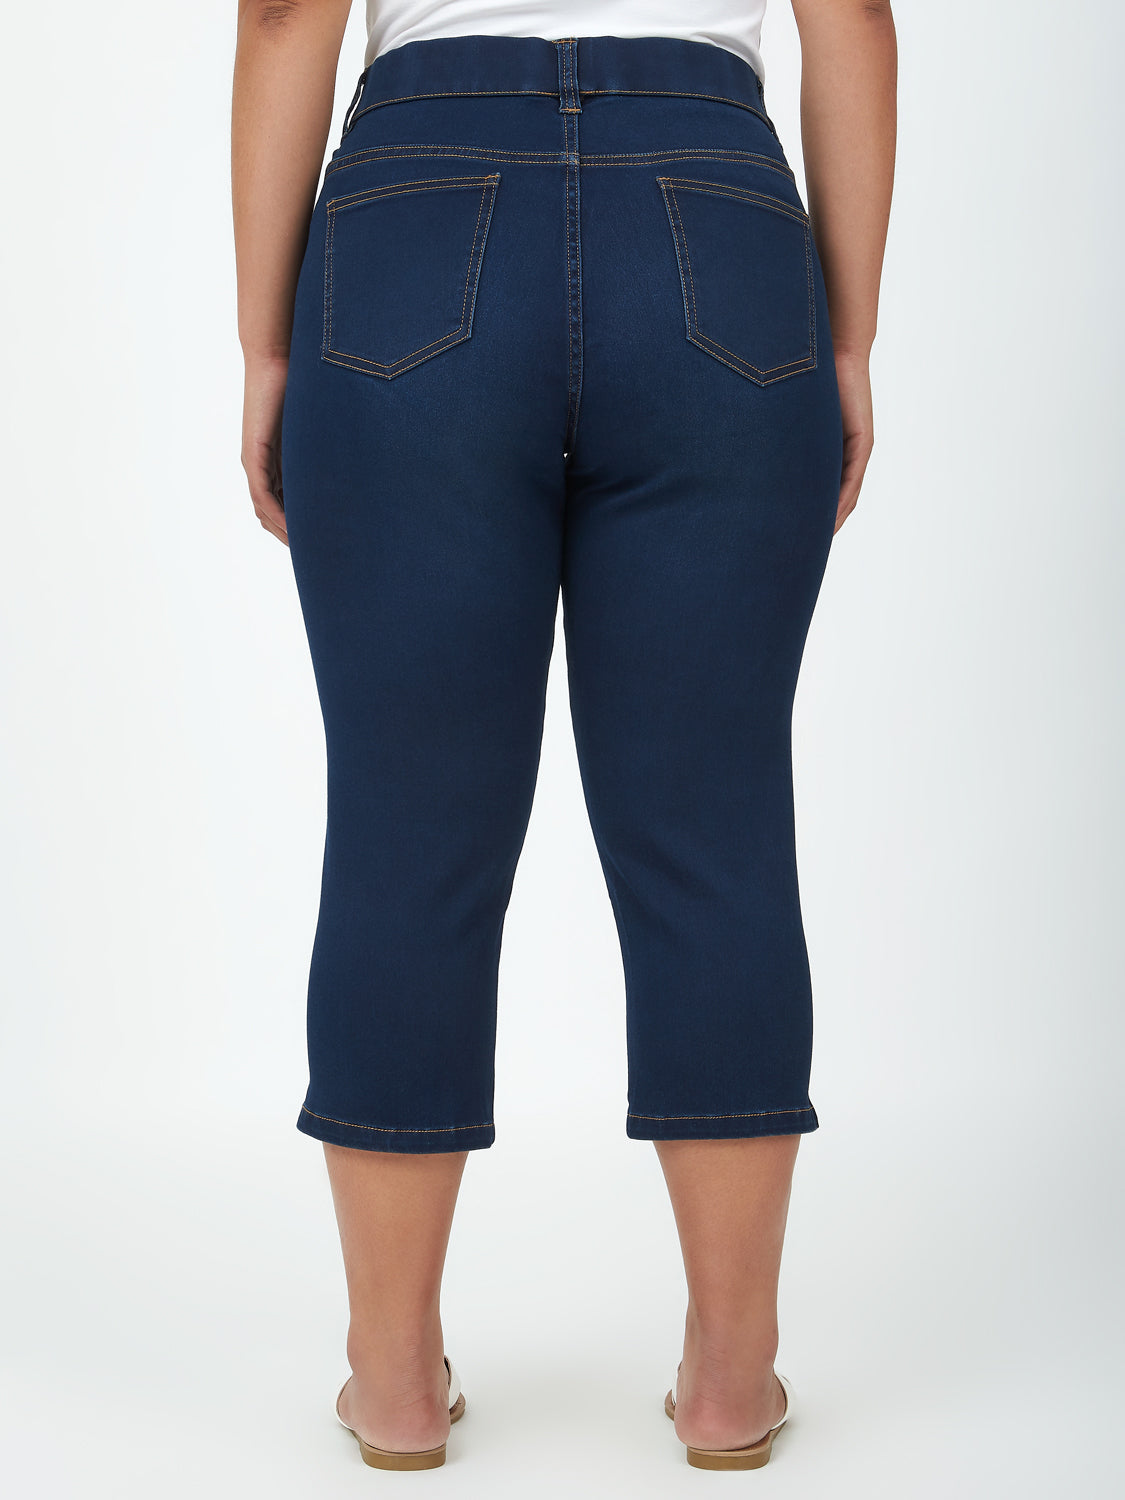 Plus Size Denim Capri Pants